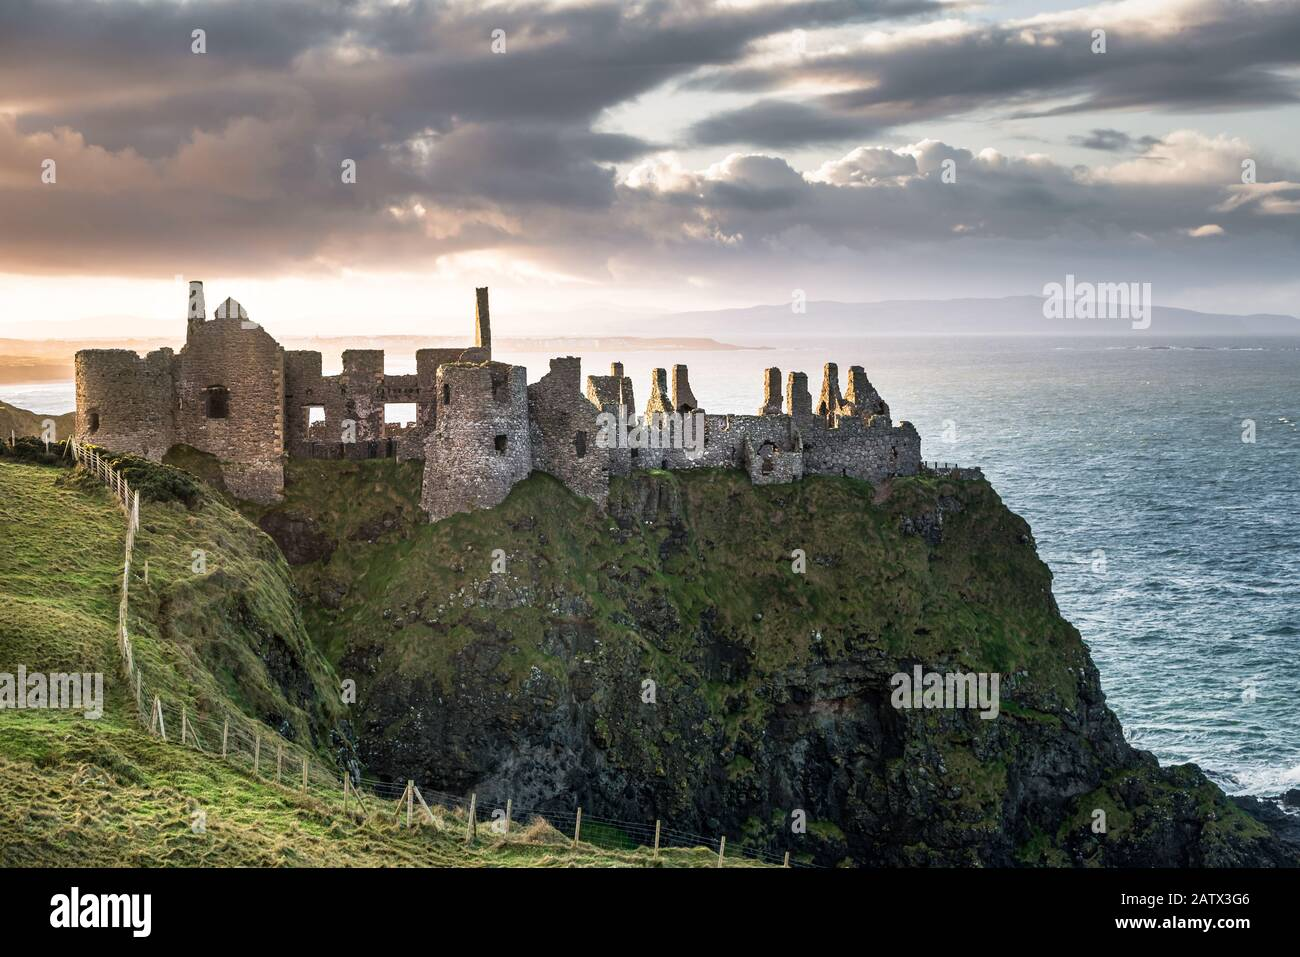 Dunluce Castle high up on a seacliff on the North Antrim coast in Northern Ireland Stock Photo